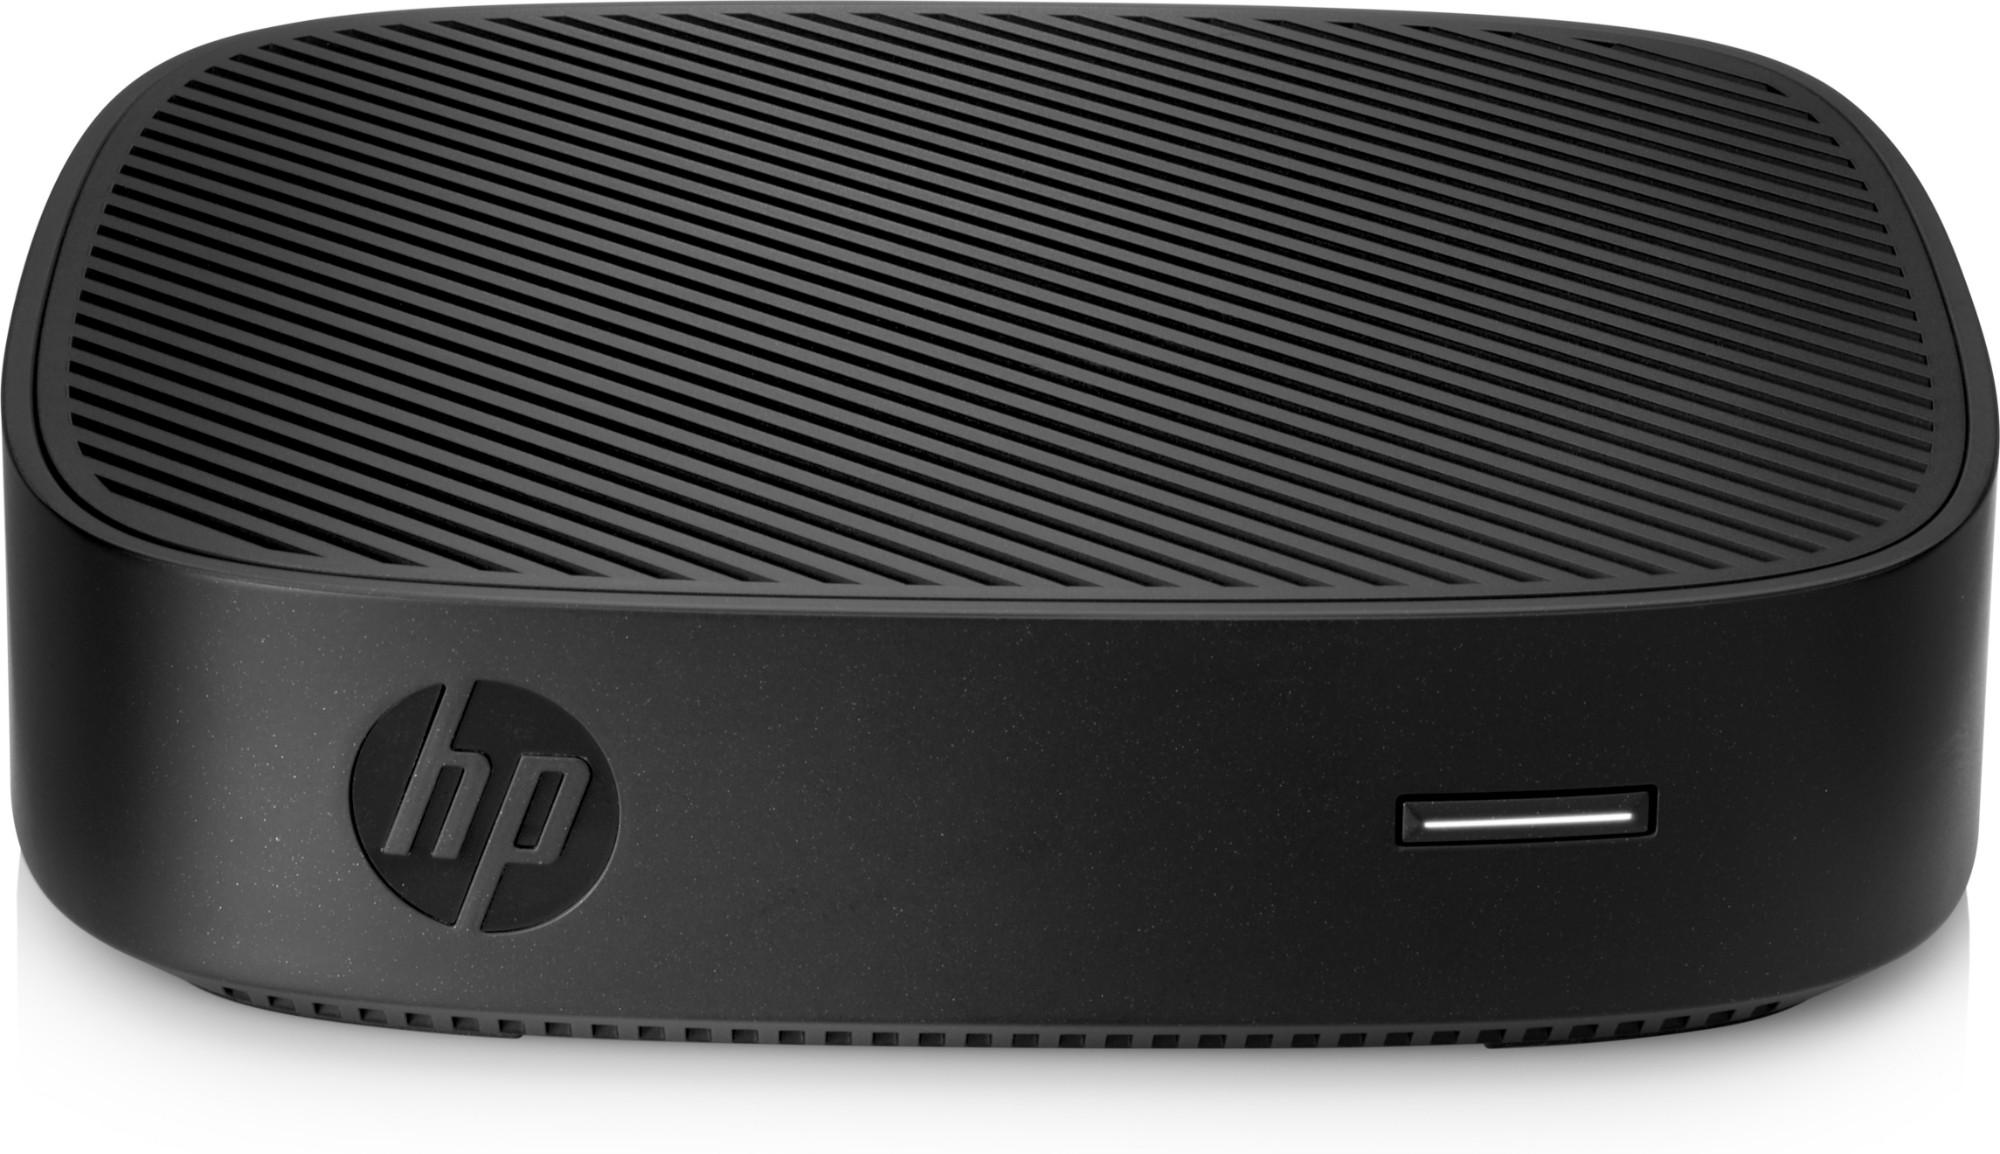 HP t430 Thin Client 6FW02AA